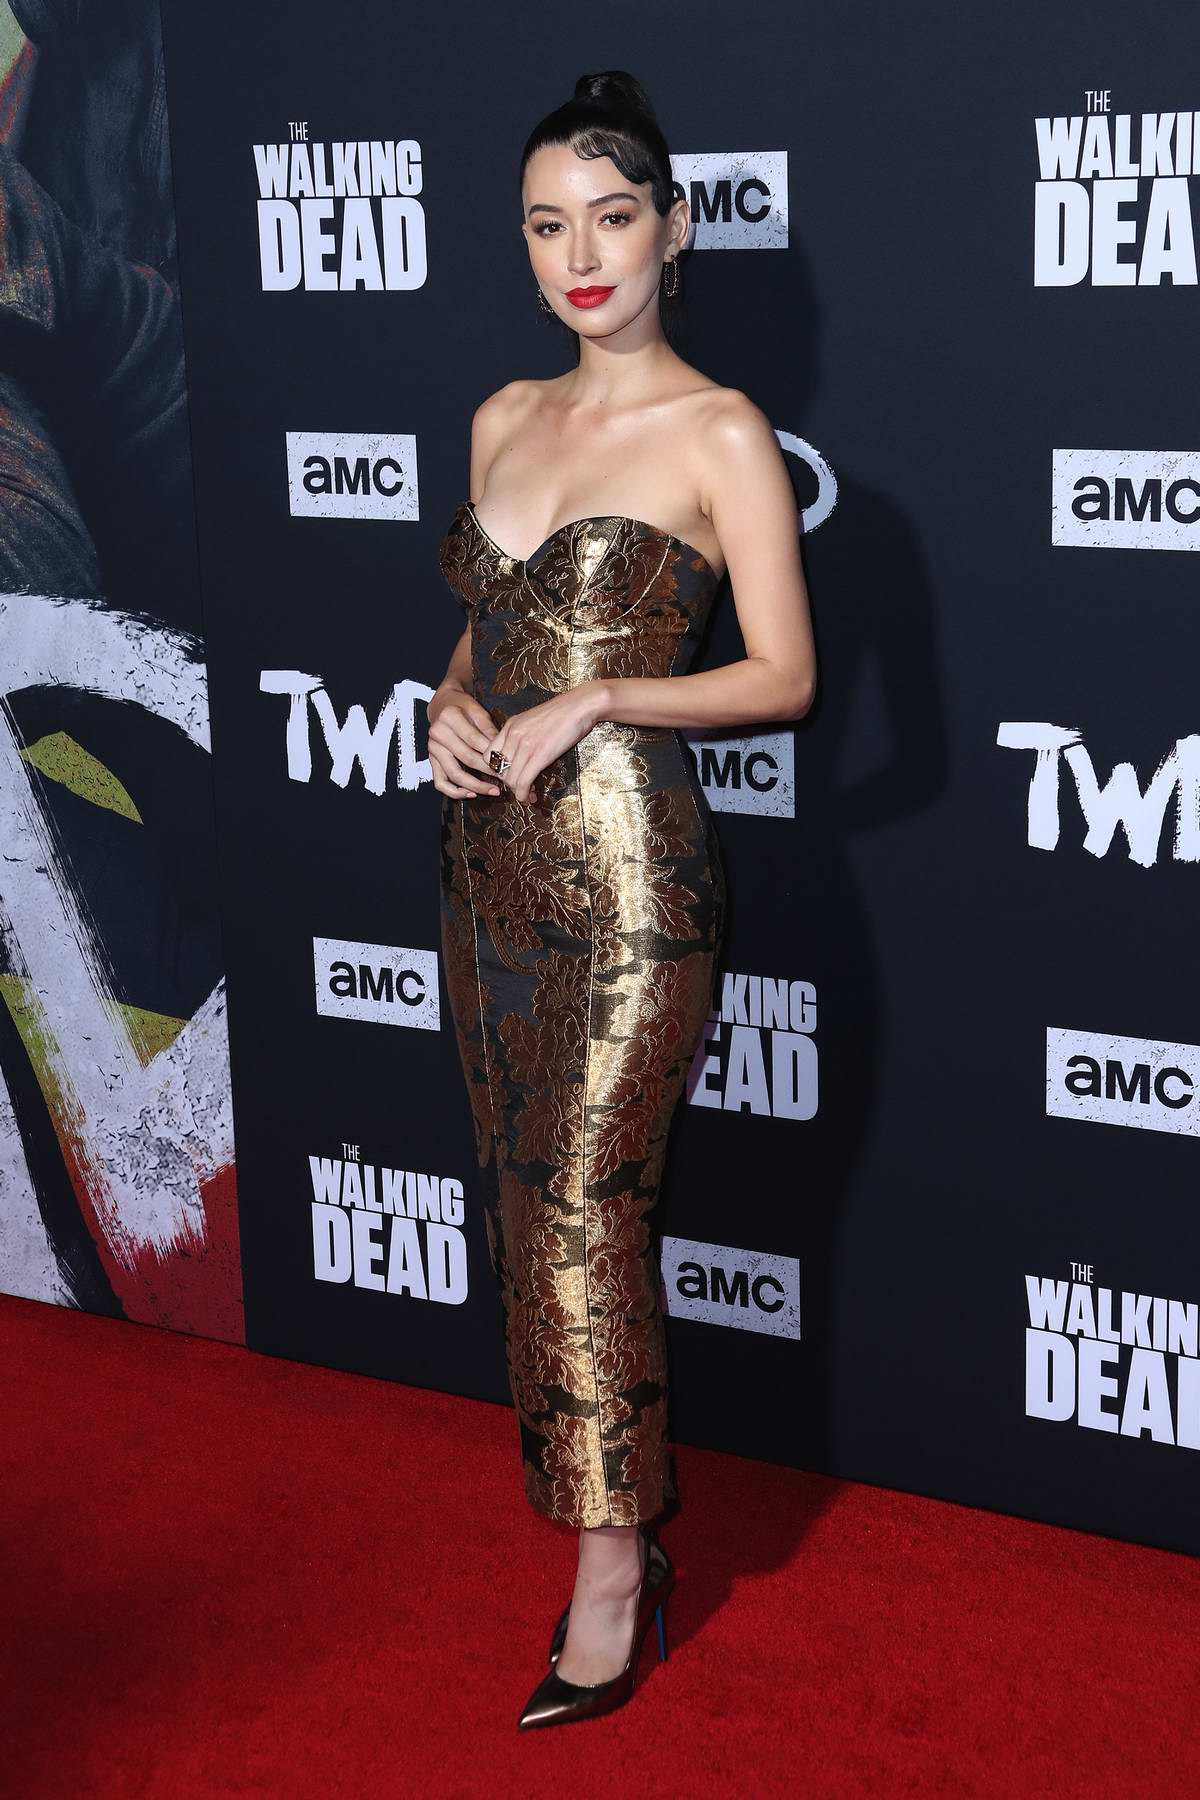 Christian Serratos attends 'The Walking Dead' Season 10 Premiere at Chinese 6 Theater in Hollywood, California